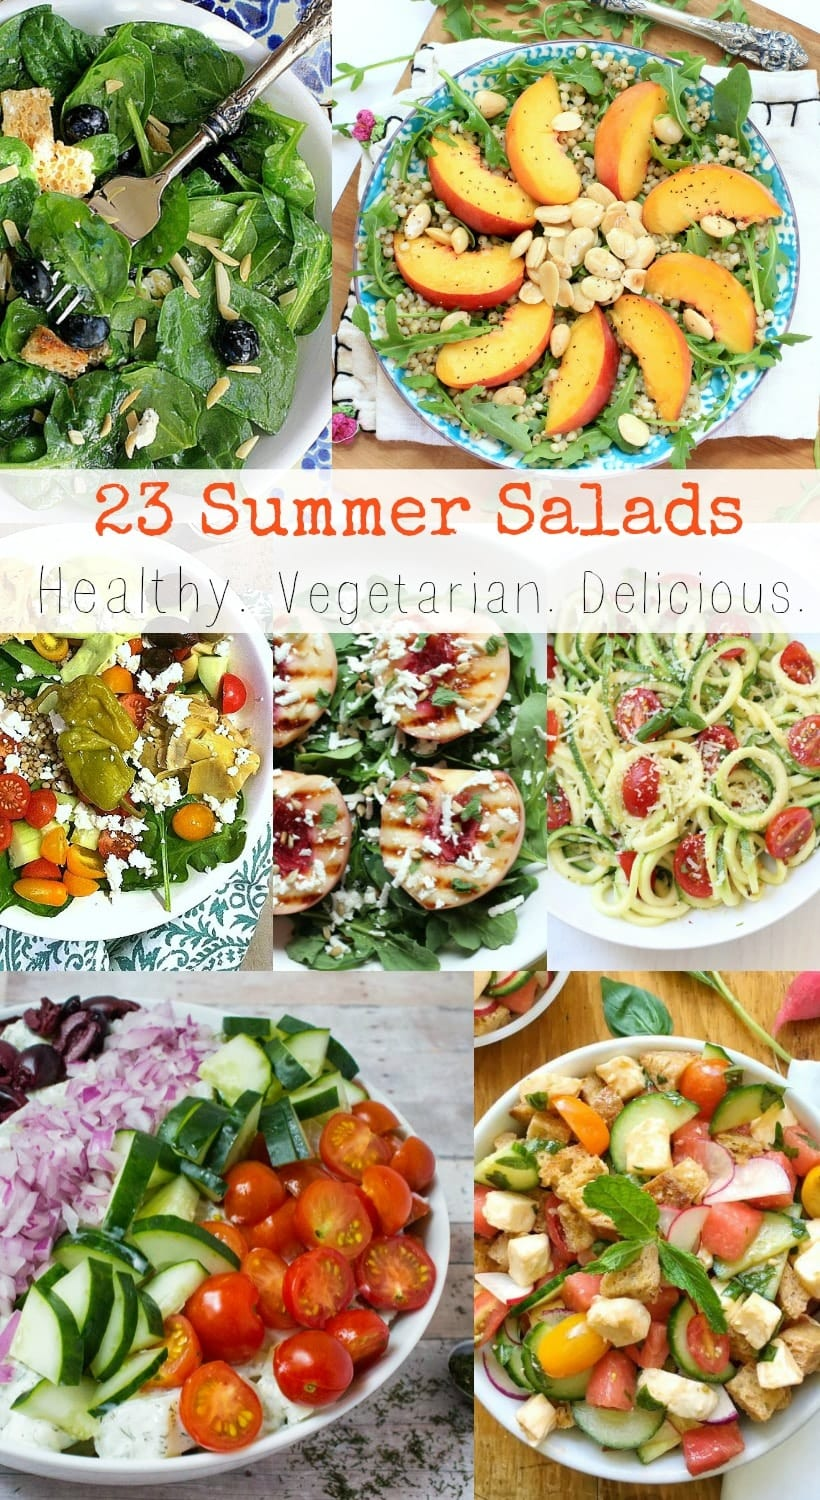 Celebrate these season! 23 Healthy Vegetarian Summer Salads featuring fresh and delicious seasonal produce. Enjoy! | Recipe Round-Up @thespicyrd